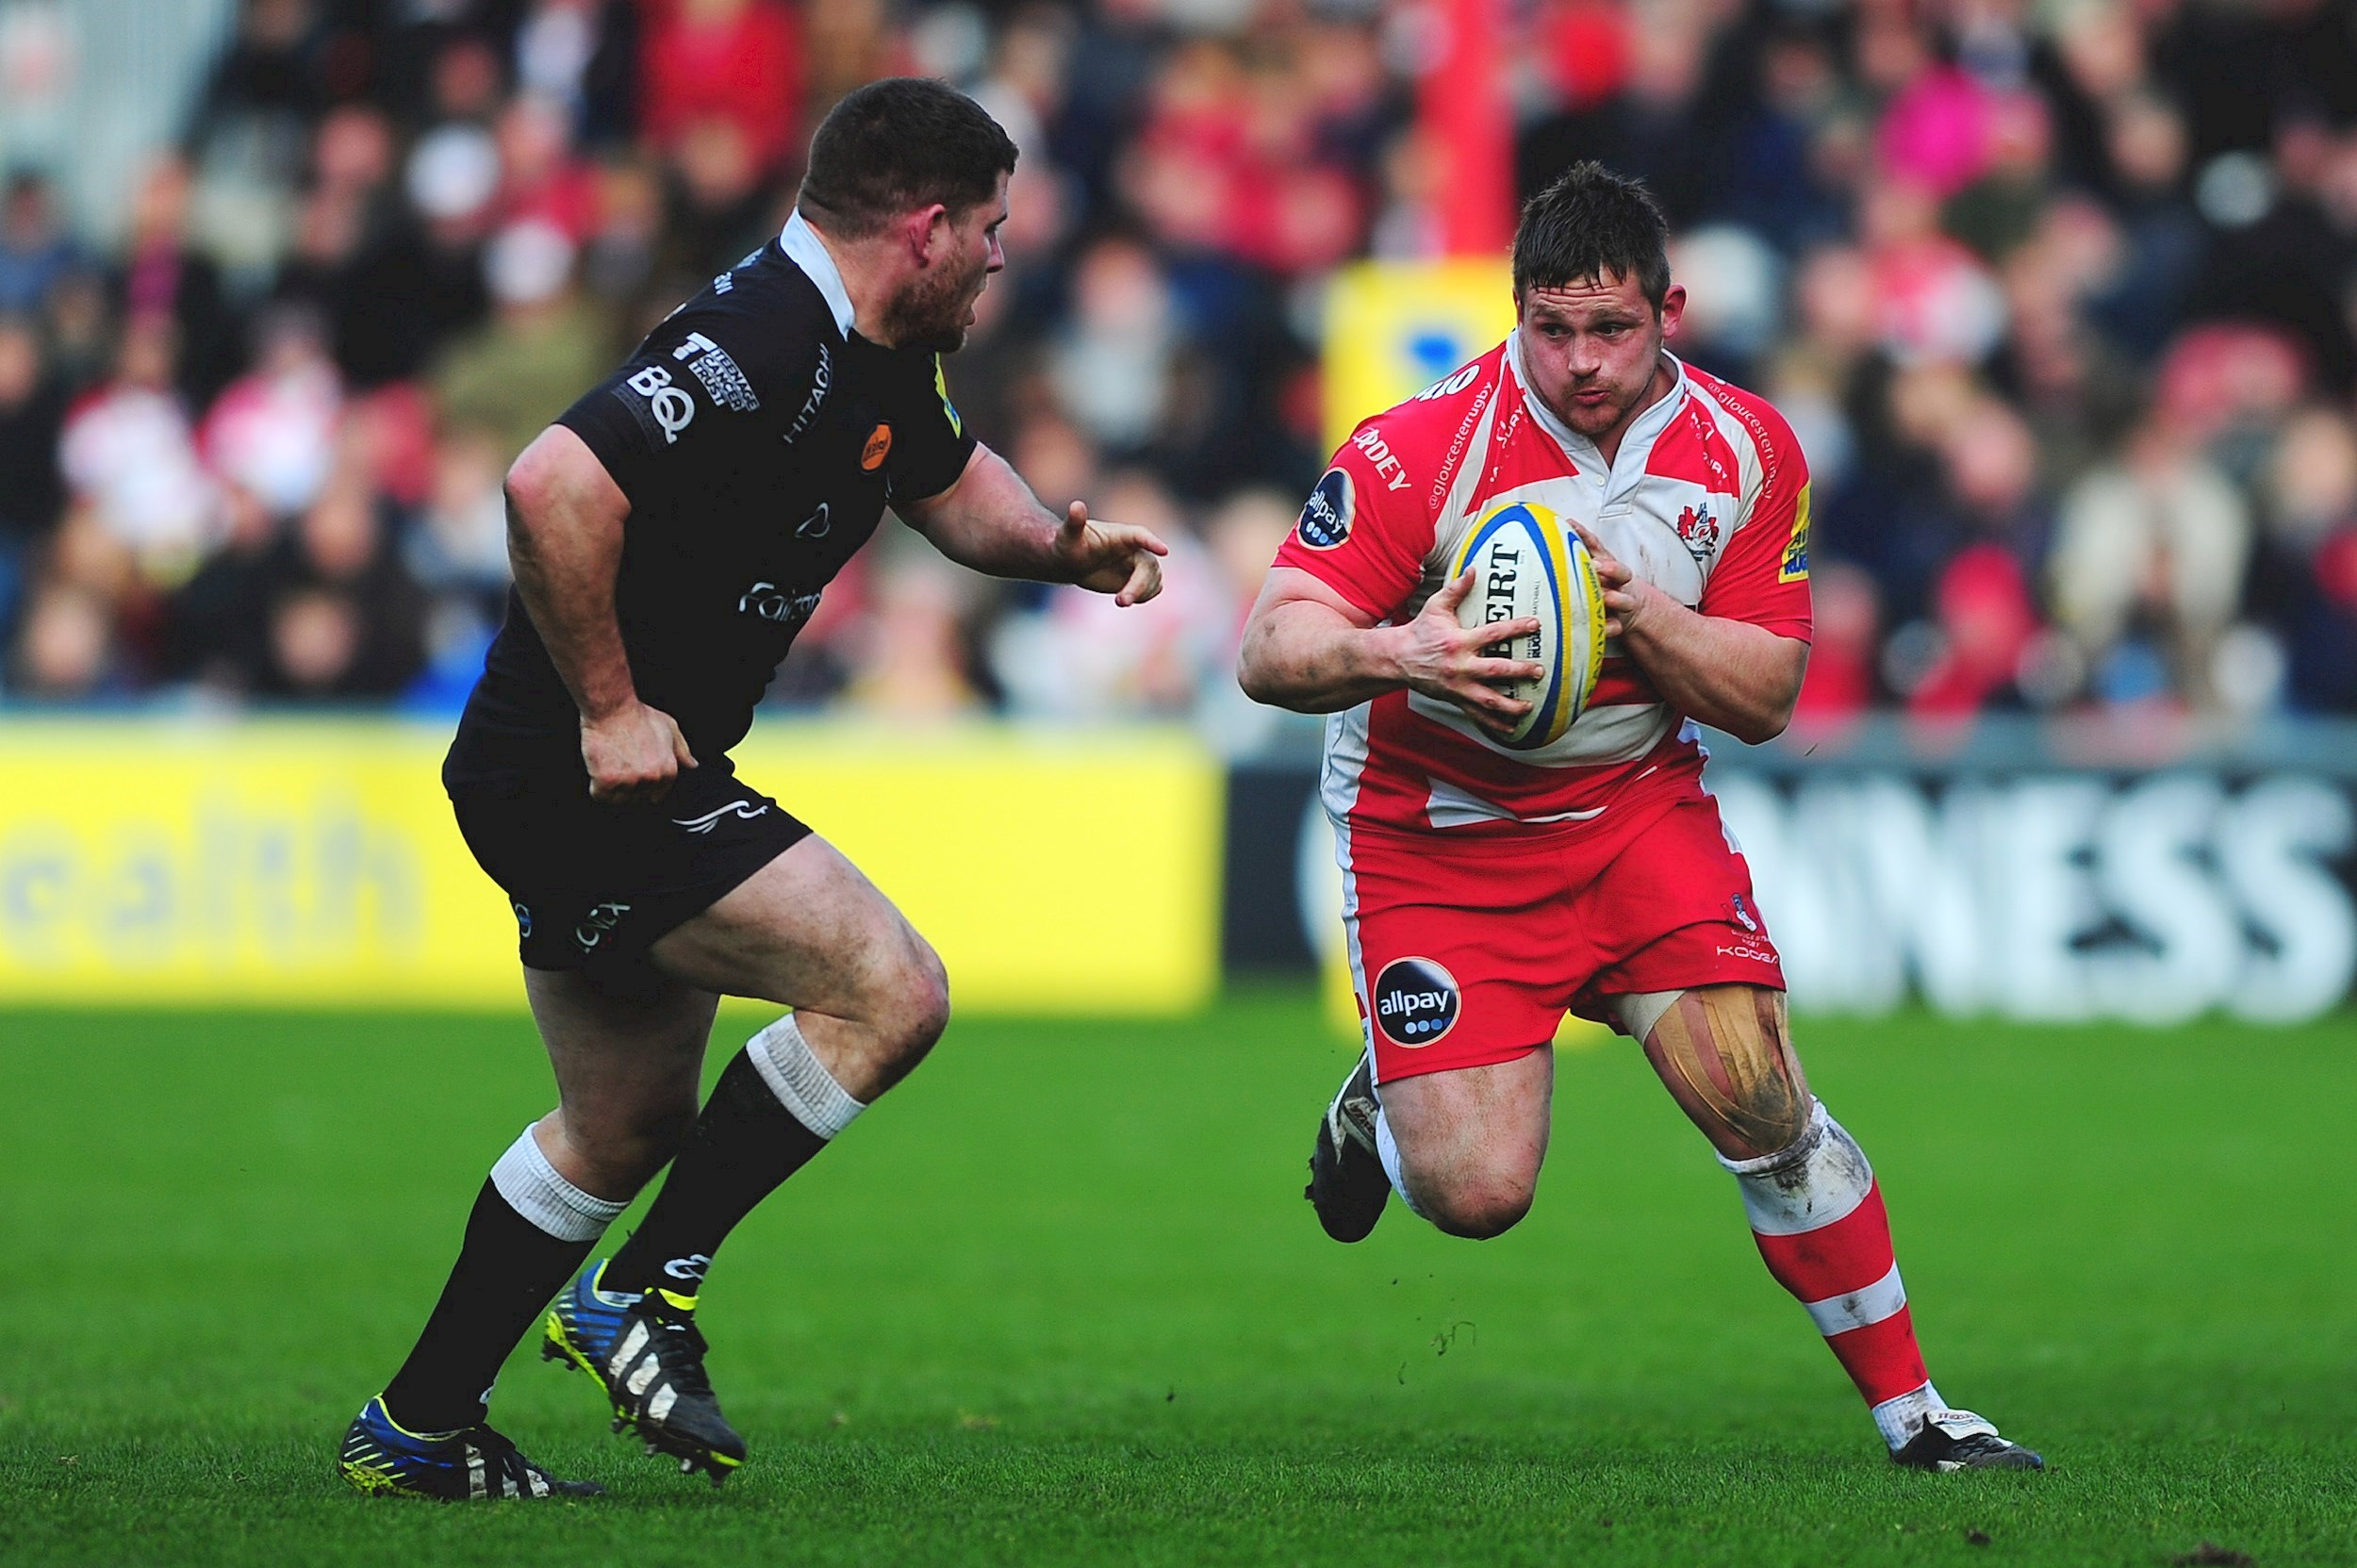 Tighthead Knight joins Bath Rugby